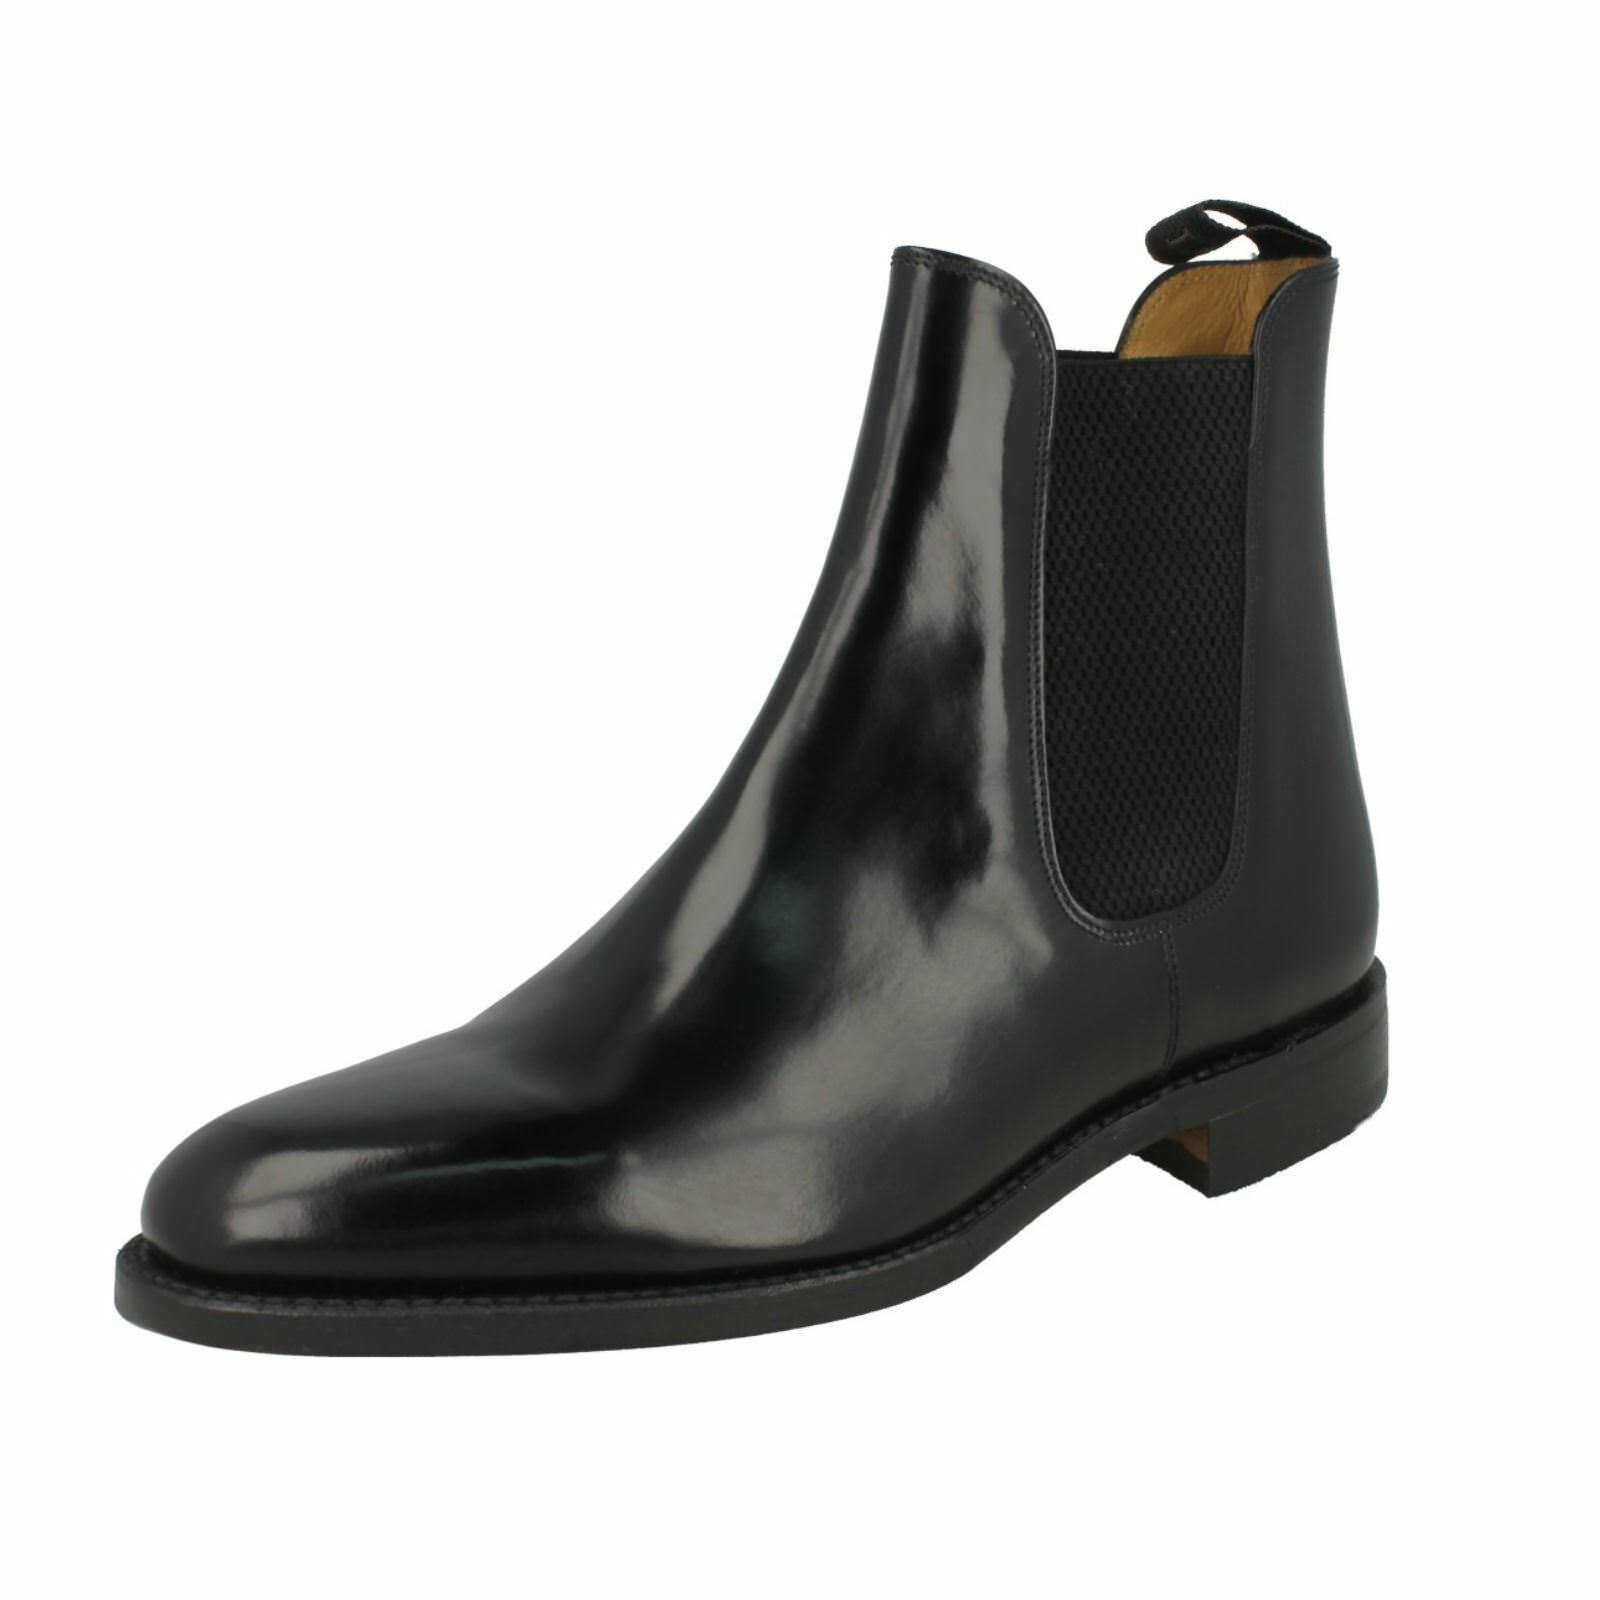 Uomo 290B F fitting schwarz Leder pull on boot boot boot by Loake 7fc32b